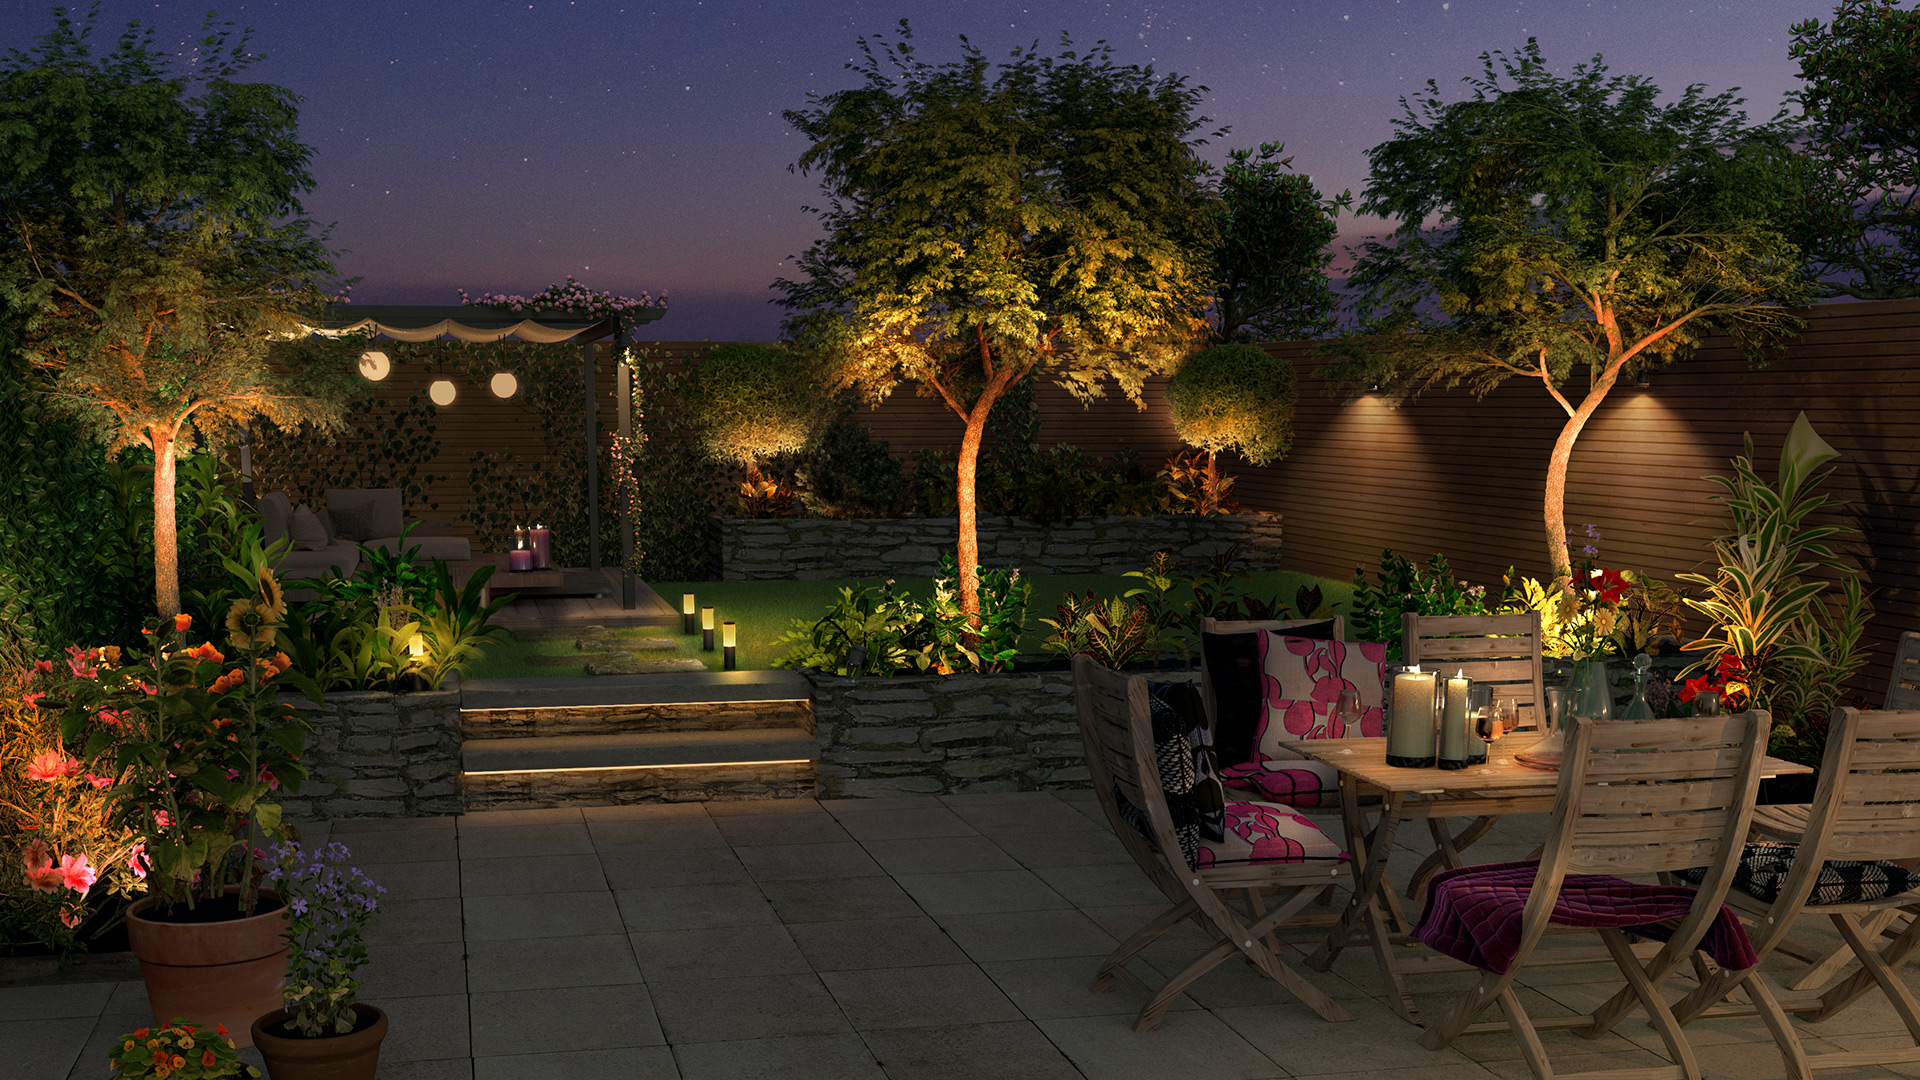 Outdoor smart lighting garden dinner setting